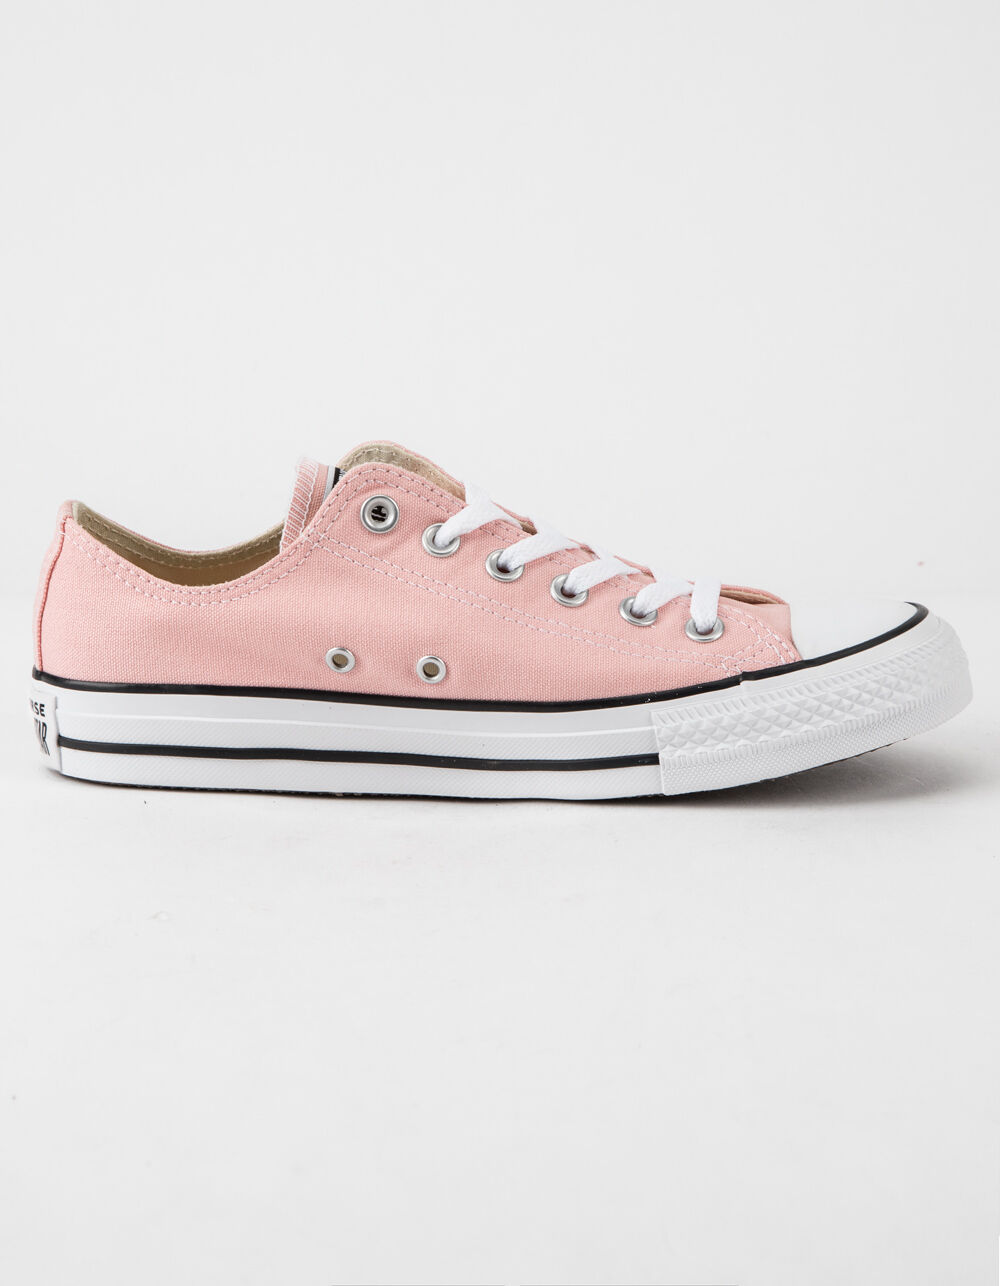 CONVERSE CHUCK TAYLOR ALL STAR STORM PINK LOW TOP SHOES